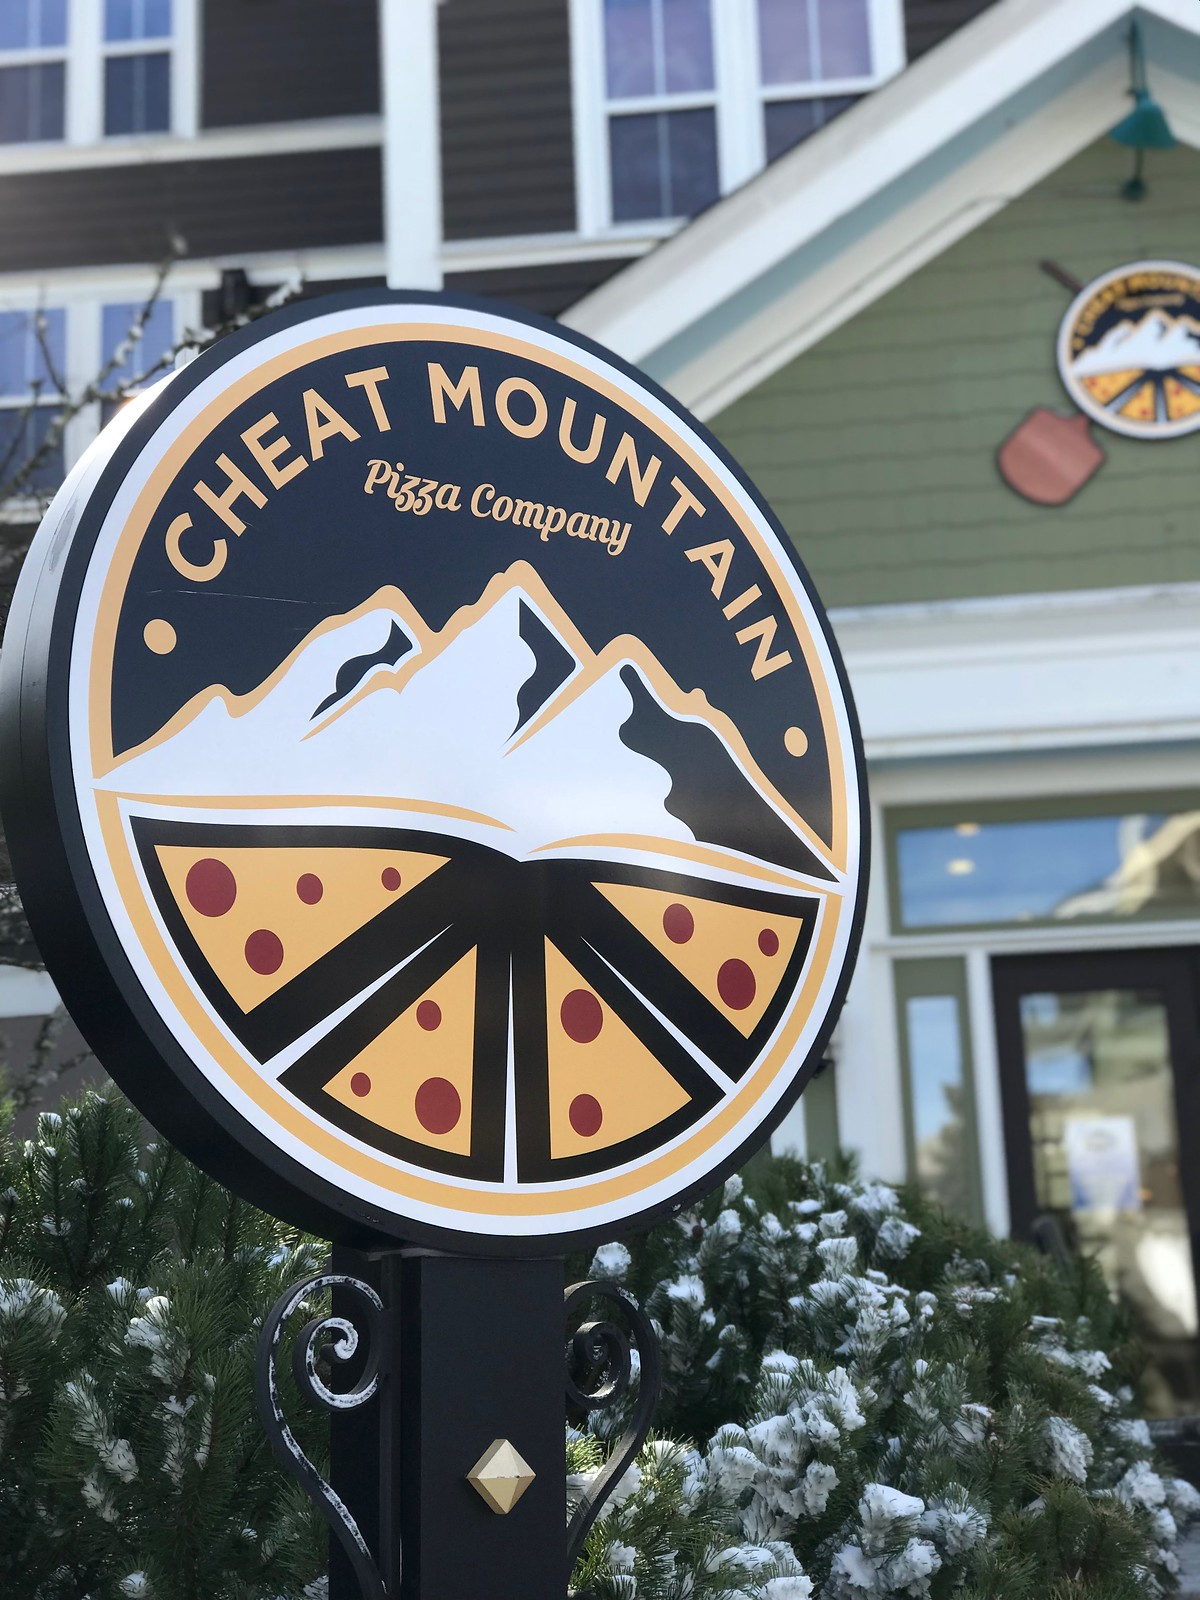 Cheat Mountain Pizza